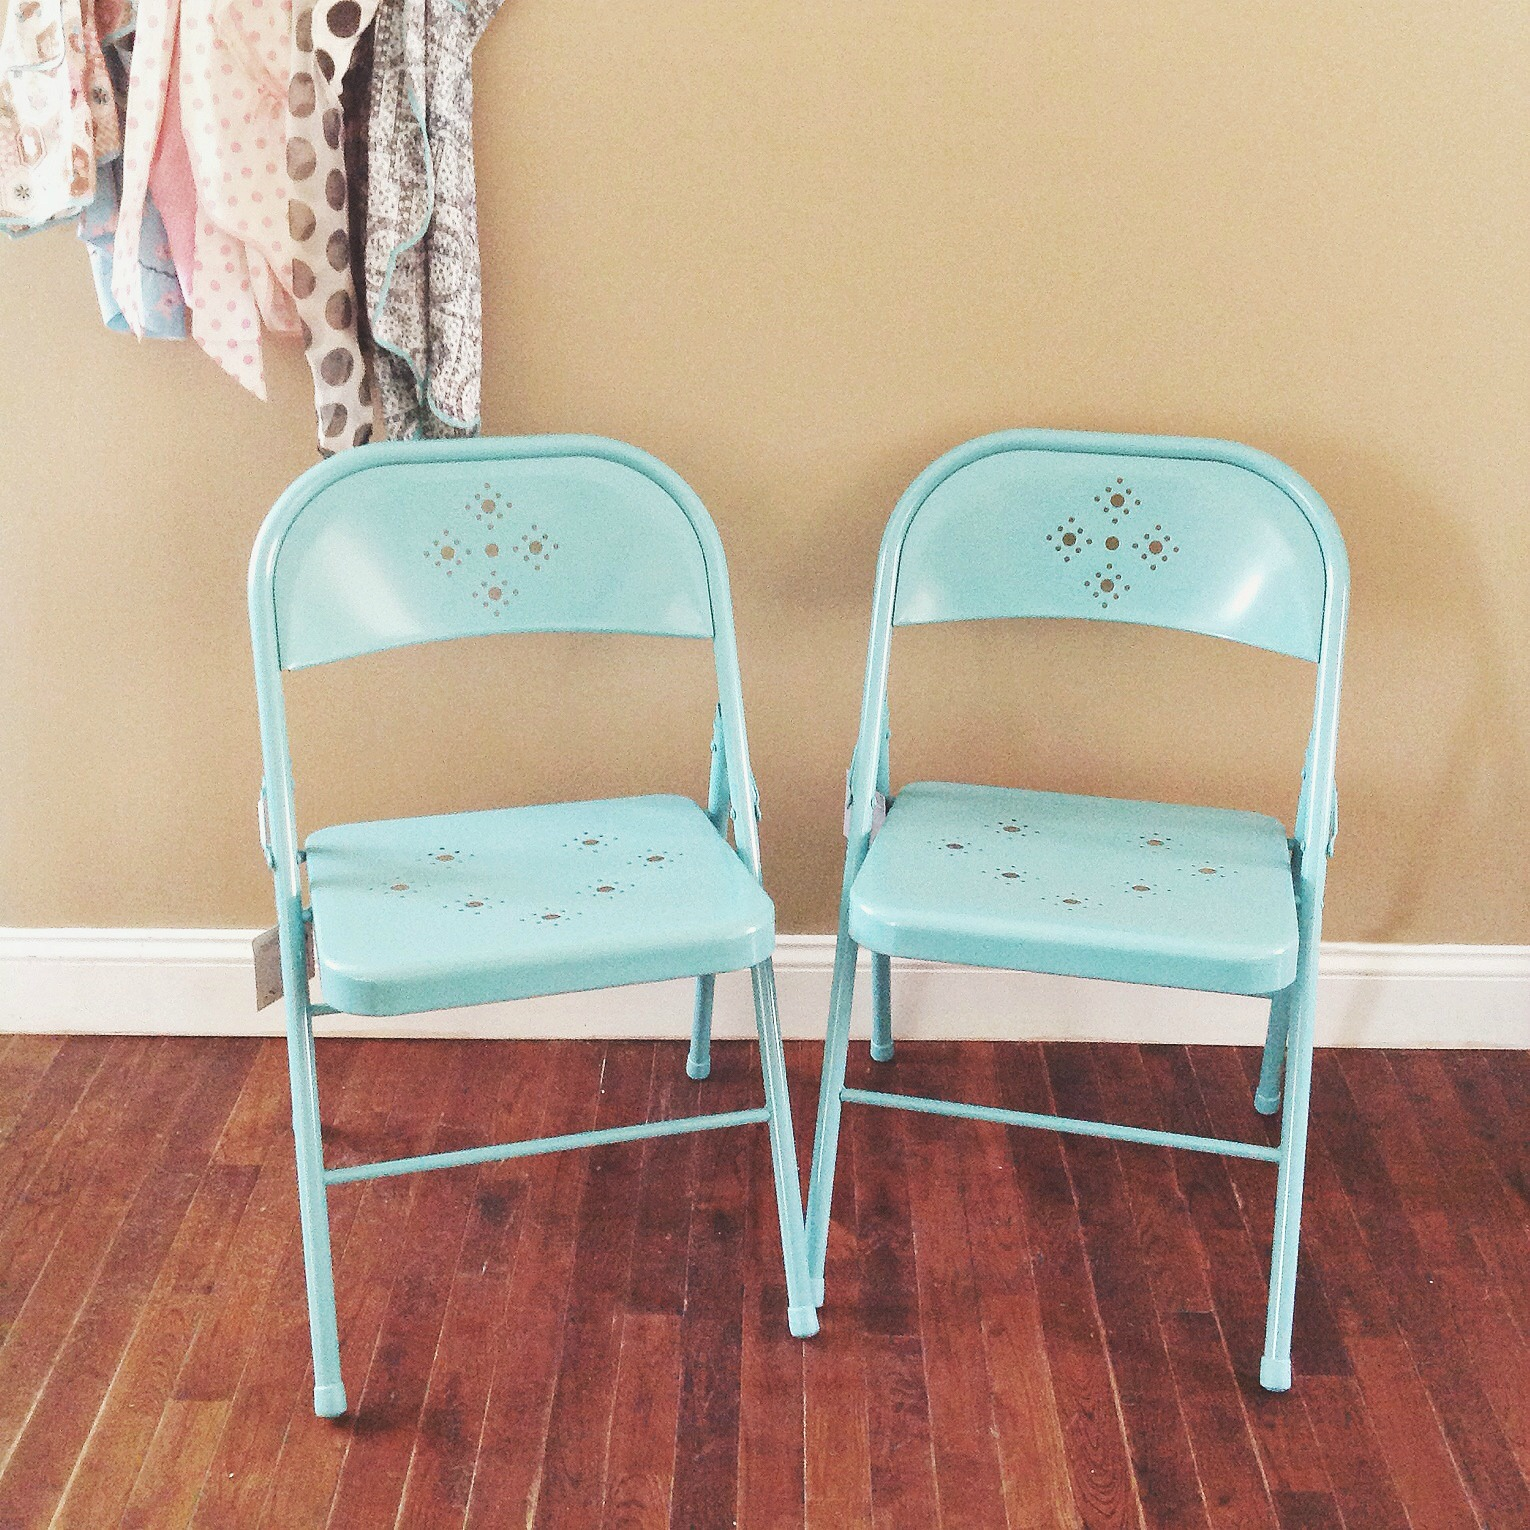 Target Metal Chairs Design Bar Oh You So Get Me A Happy Haul